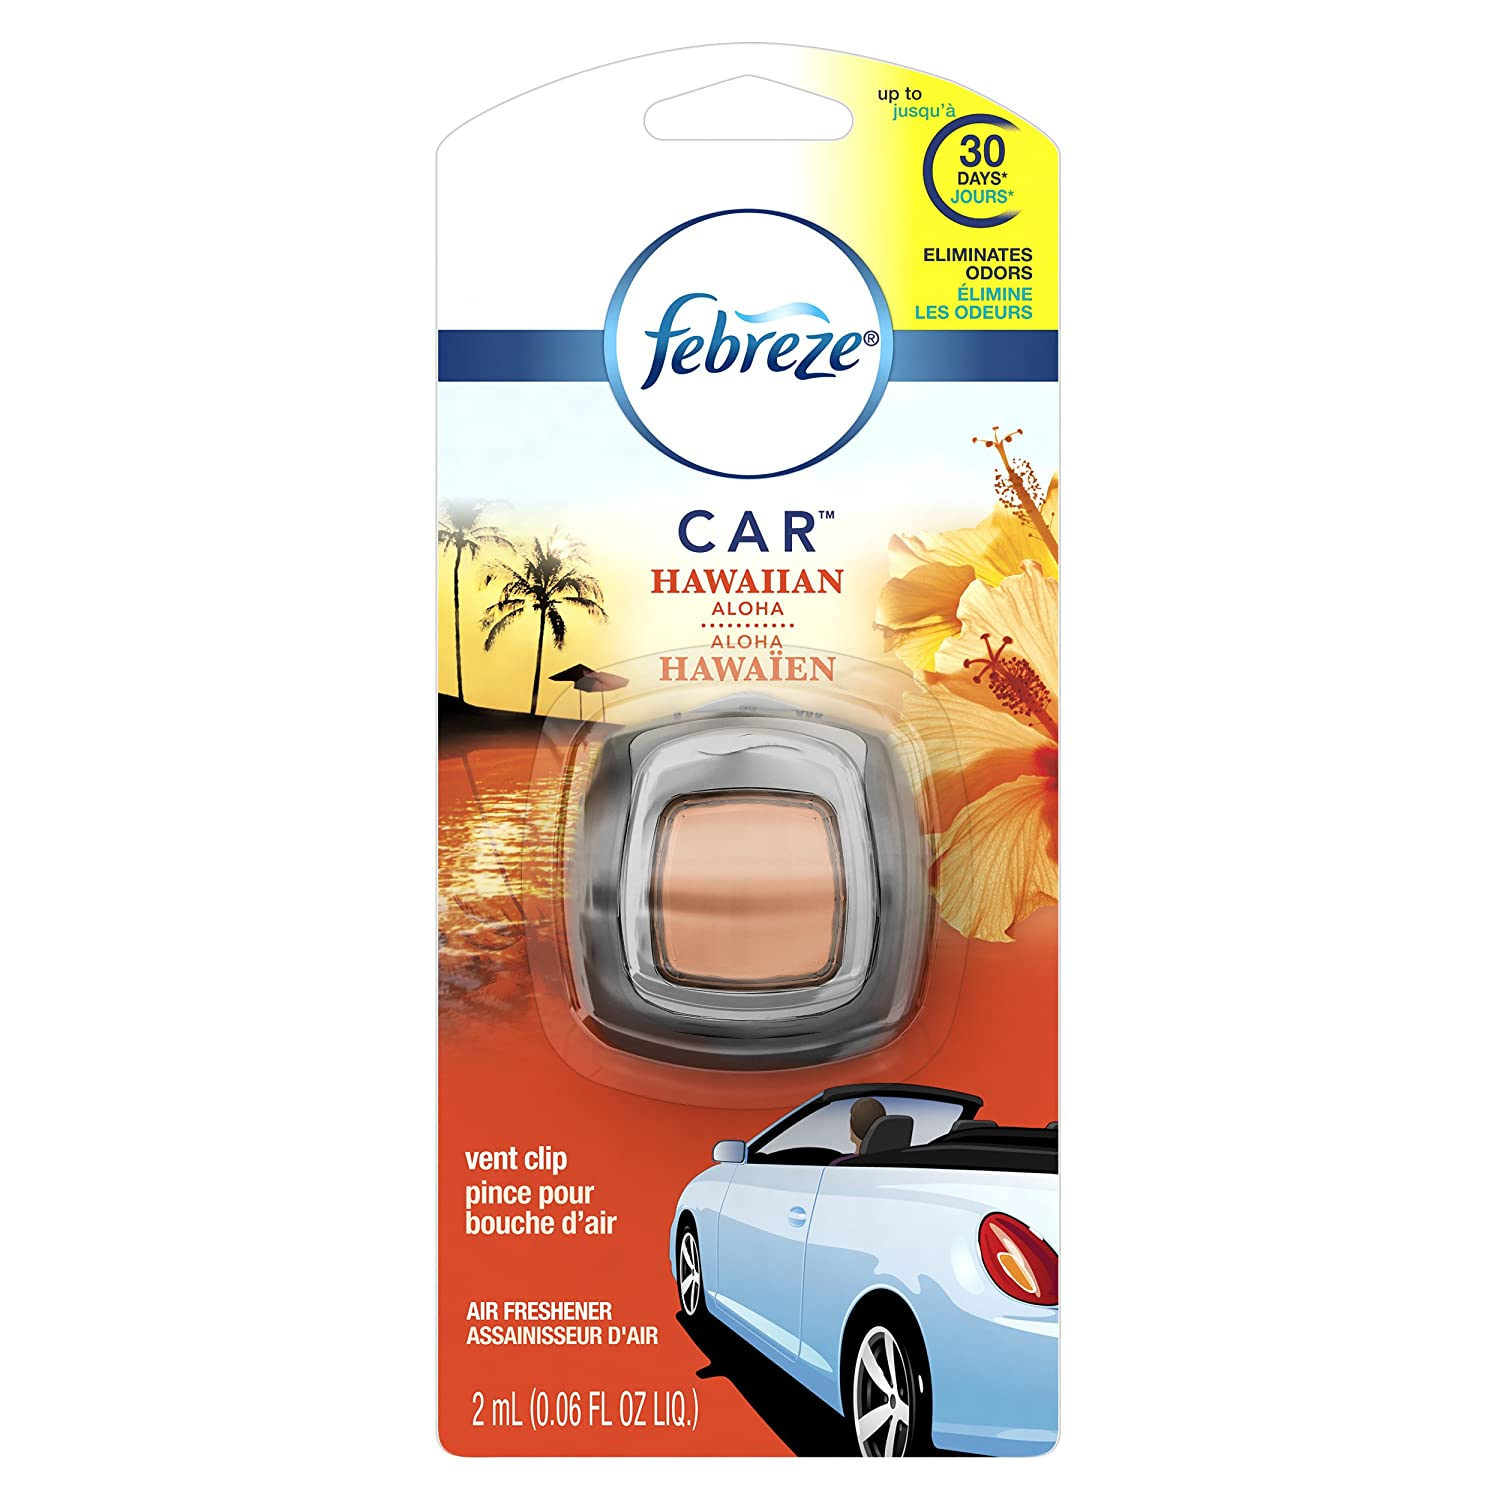 Febreze Car Vent Clip Hawaiian Aloha Air Freshener 1 Count - Packaging May Vary Procter and Gamble